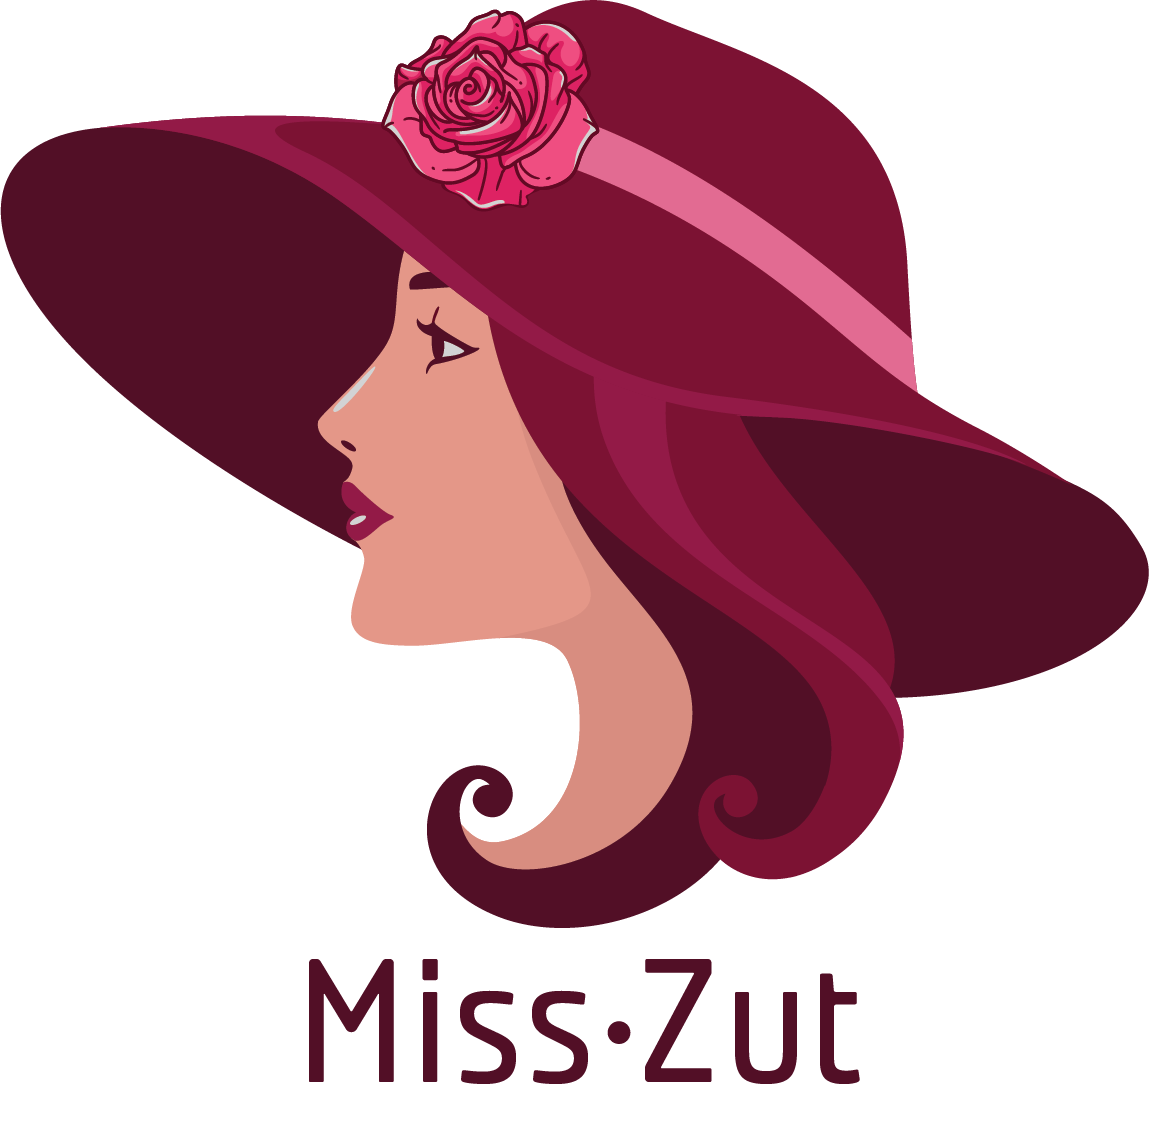 MissZut partnerships